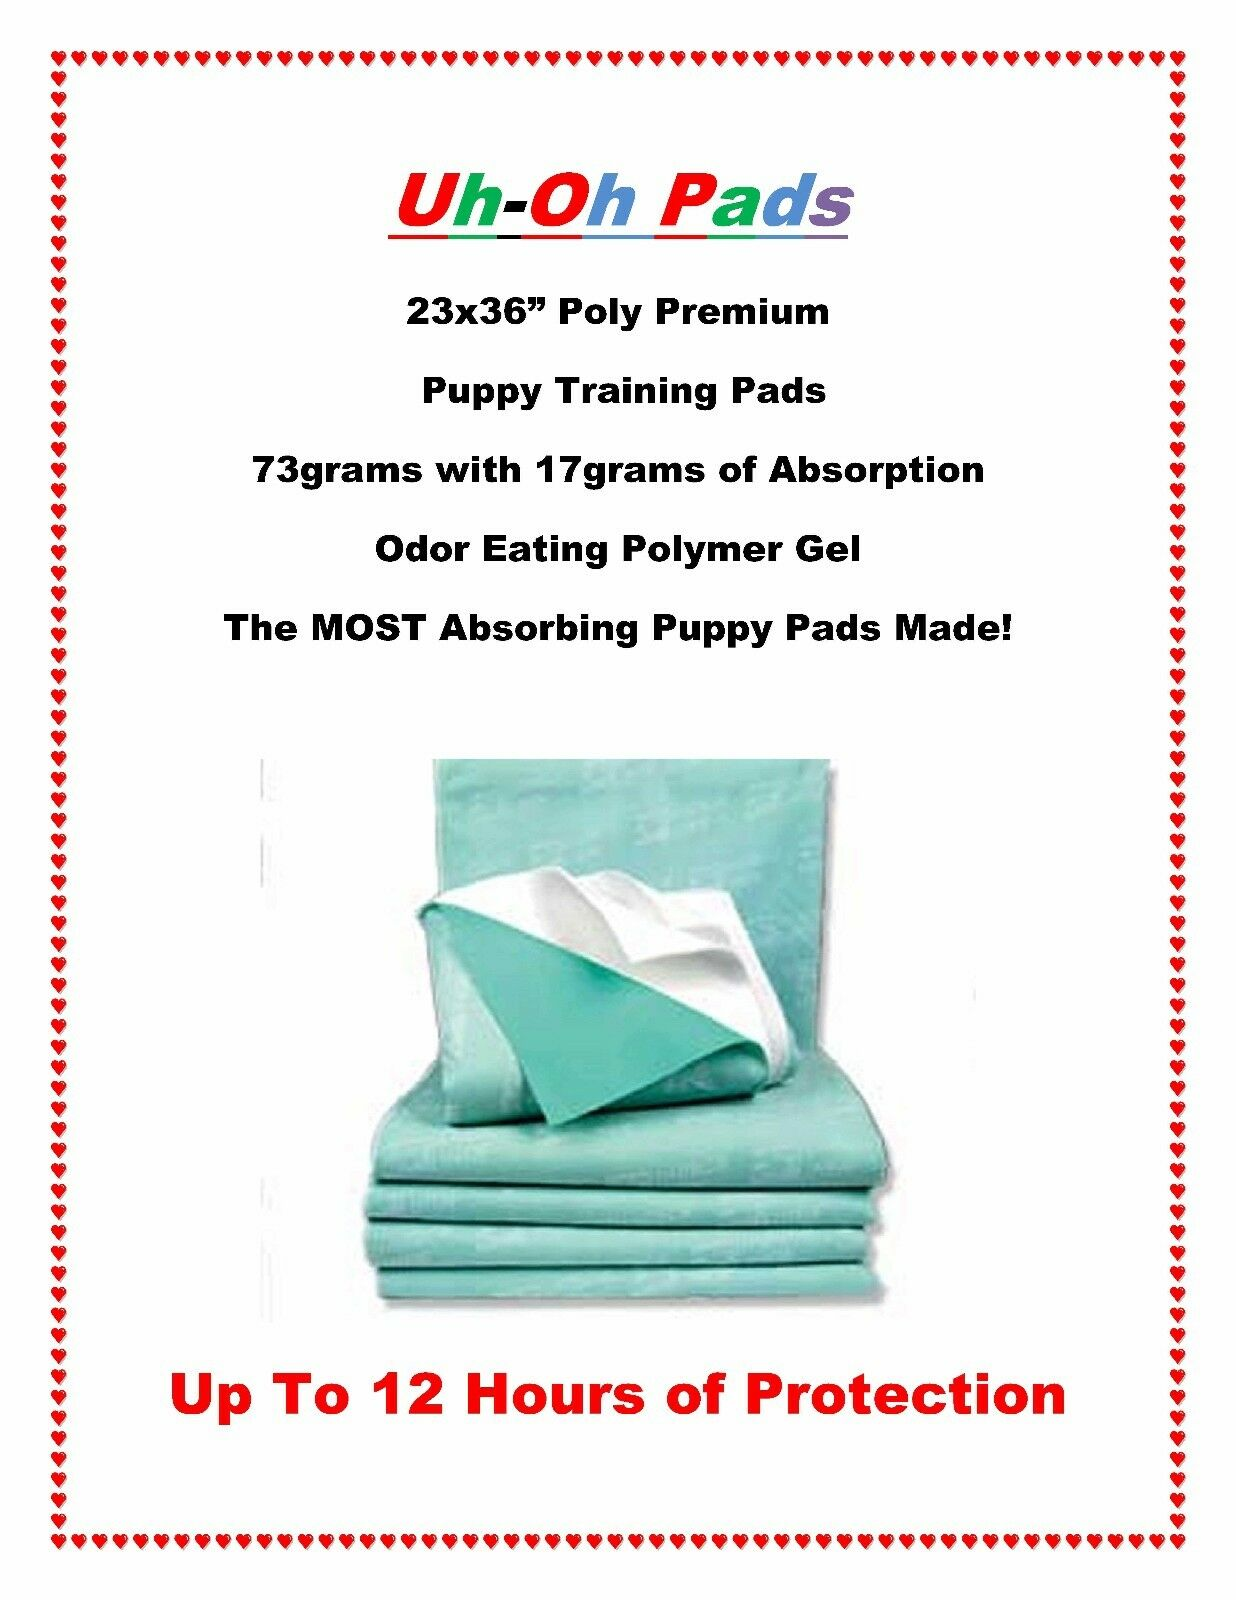 300 UH OH Poly-Pro's 23x36 PREMIUM Puppy Training Pads w Absor-O-Max up to 12hrs